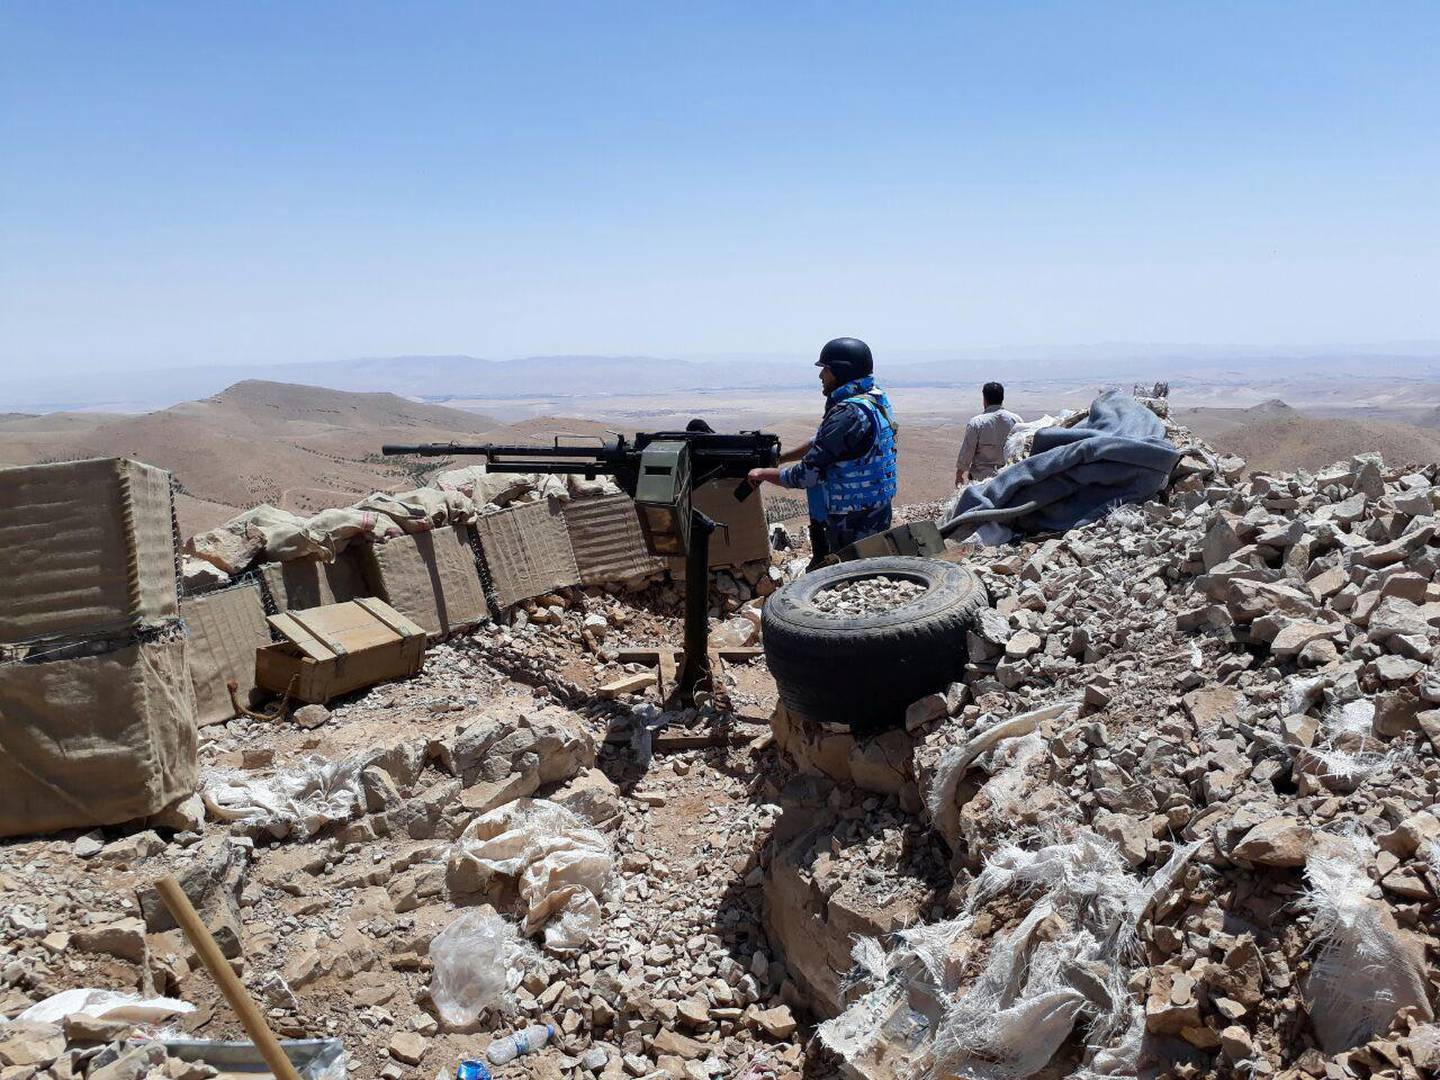 Fighters from the Syrian army units and Hezbollah are seen on the western mountains of Qalamoun, near Damascus, in this handout picture provided by SANA on July 23, 2017, Syria. SANA/Handout via REUTERS  ATTENTION EDITORS - THIS PICTURE WAS PROVIDED BY A THIRD PARTY. REUTERS IS UNABLE TO INDEPENDENTLY VERIFY THE AUTHENTICITY, CONTENT, LOCATION OR DATE OF THIS IMAGE.